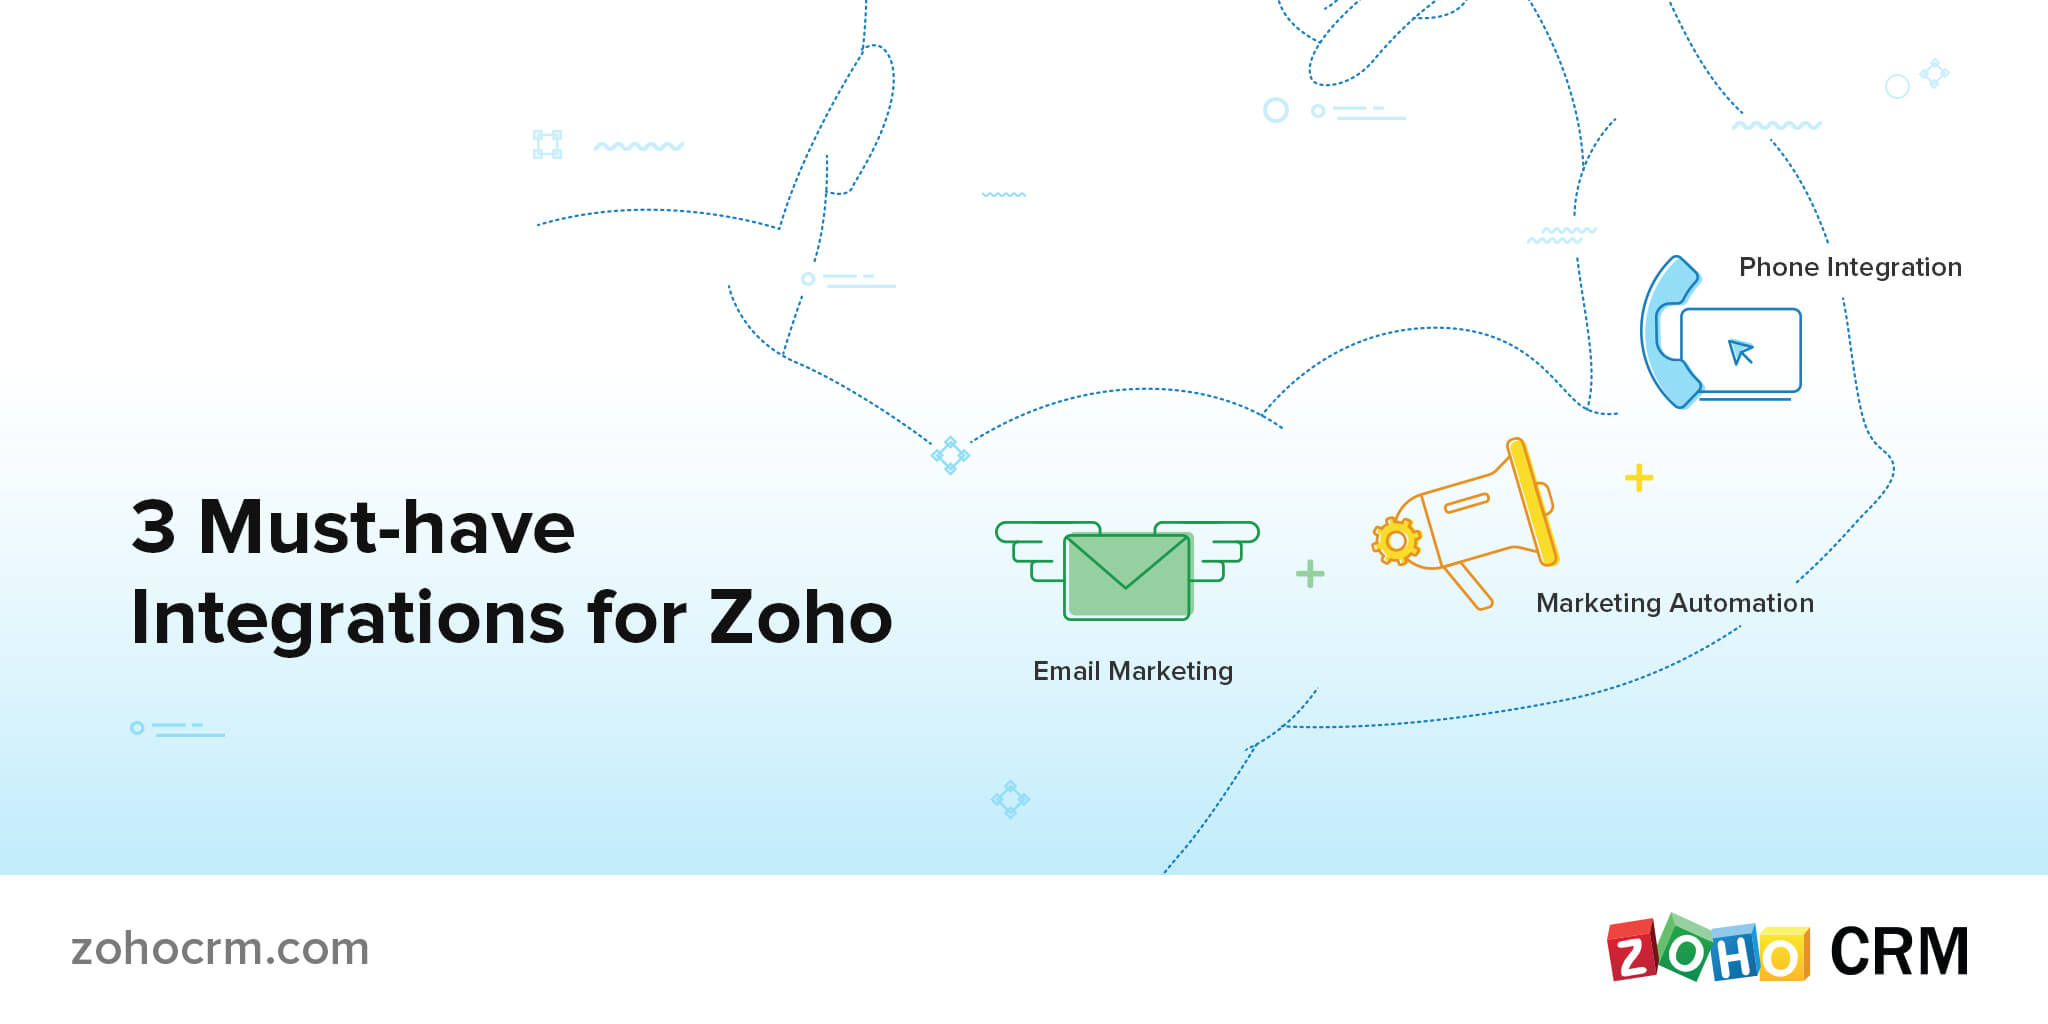 3 must-have integrations for Zoho.